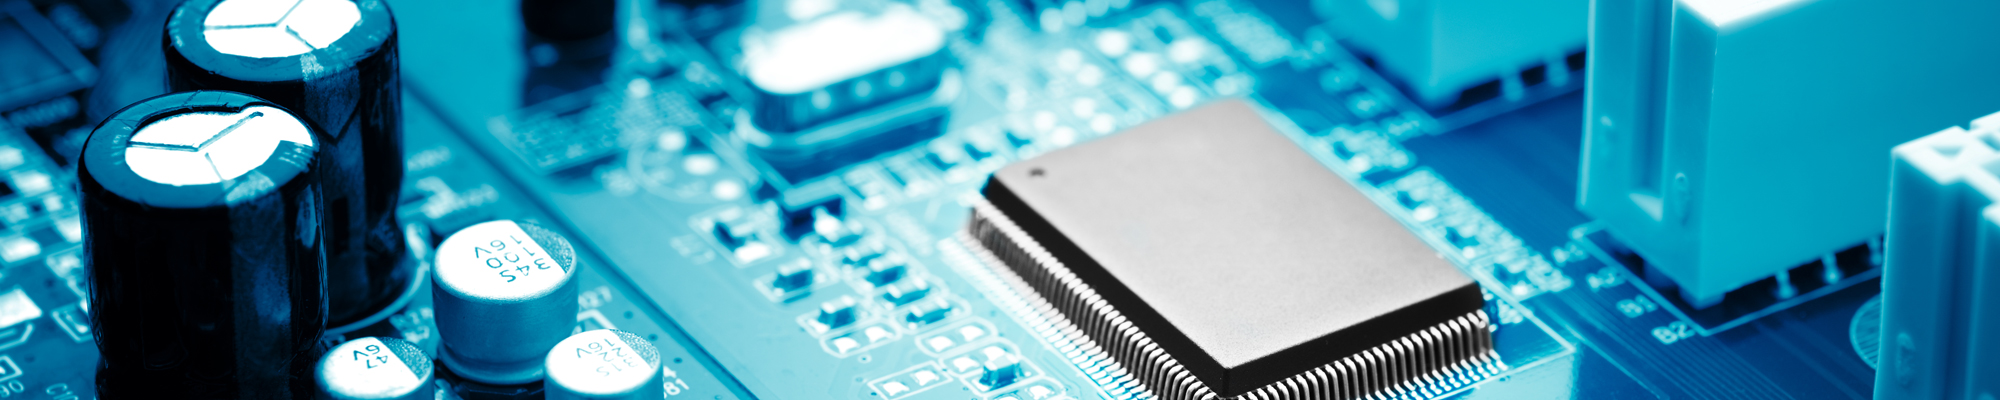 Electronic Design Services Embedded Systems And Applications Hardware Solutions Circuit Development